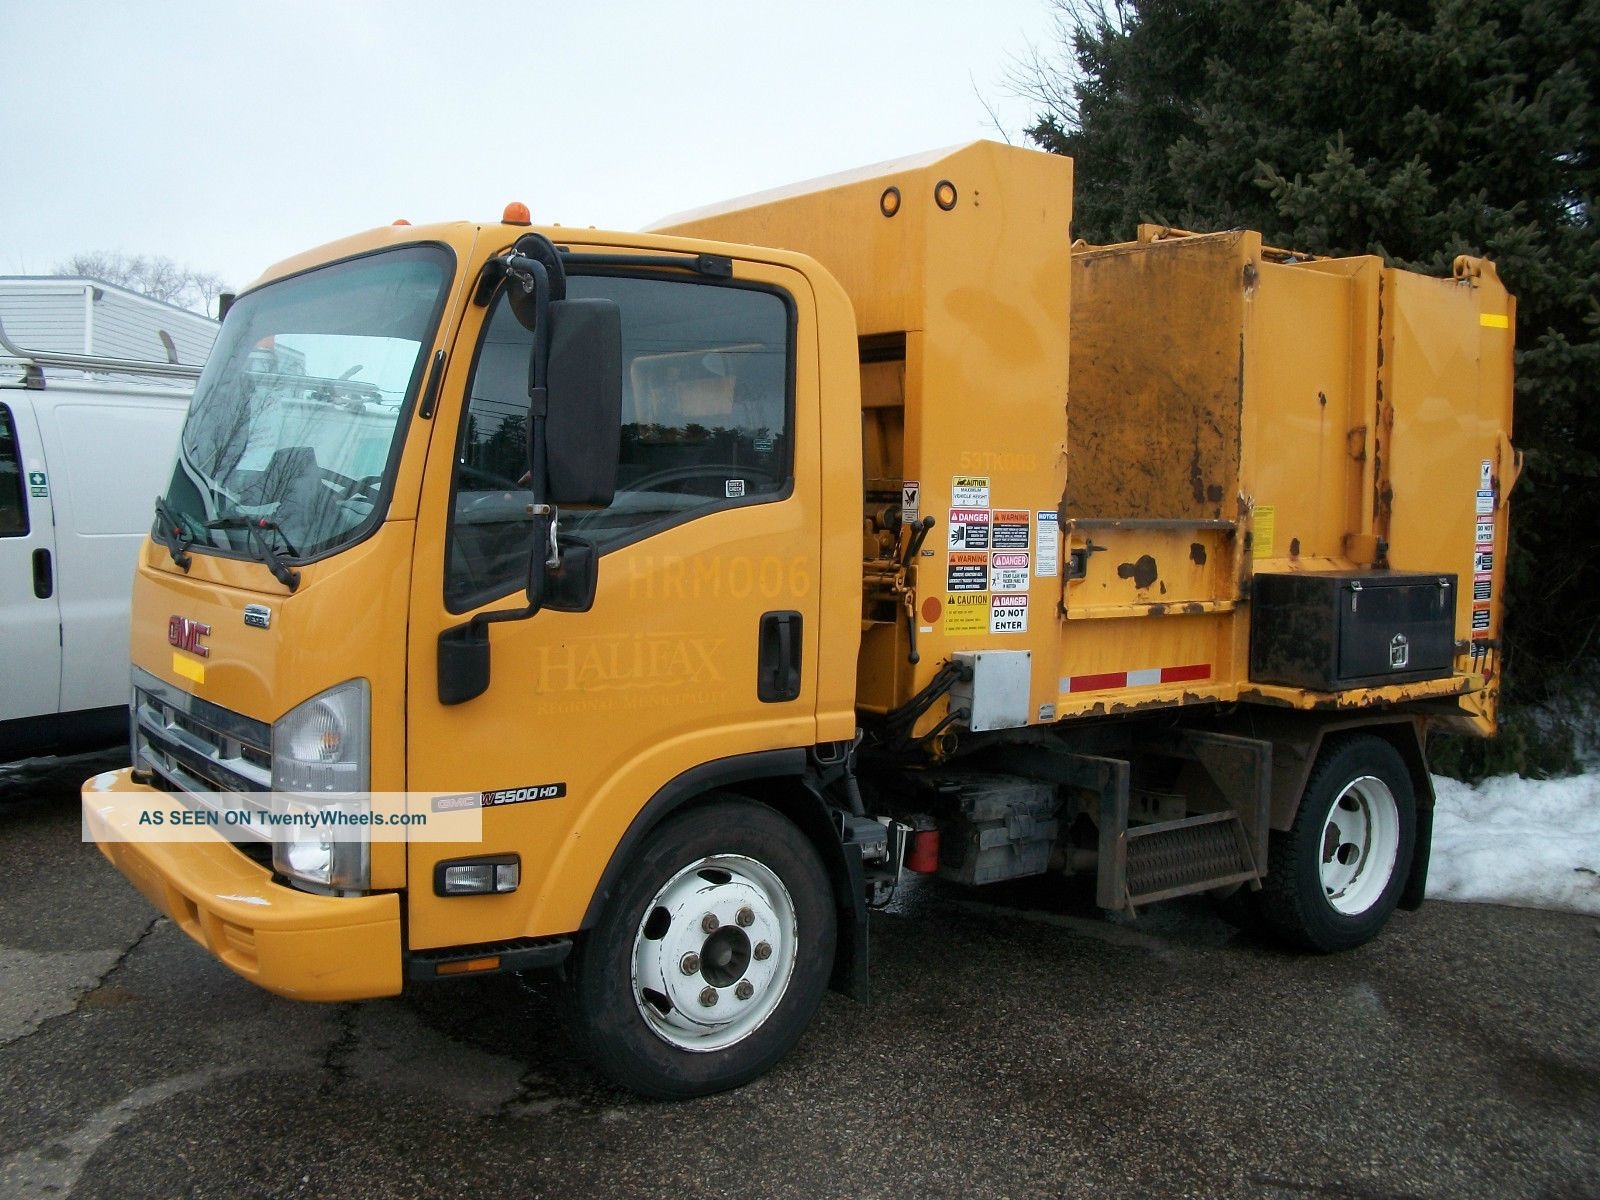 2008 Gmc W 5500 Hd Garbage/refuse Packer Other Medium Duty Trucks photo